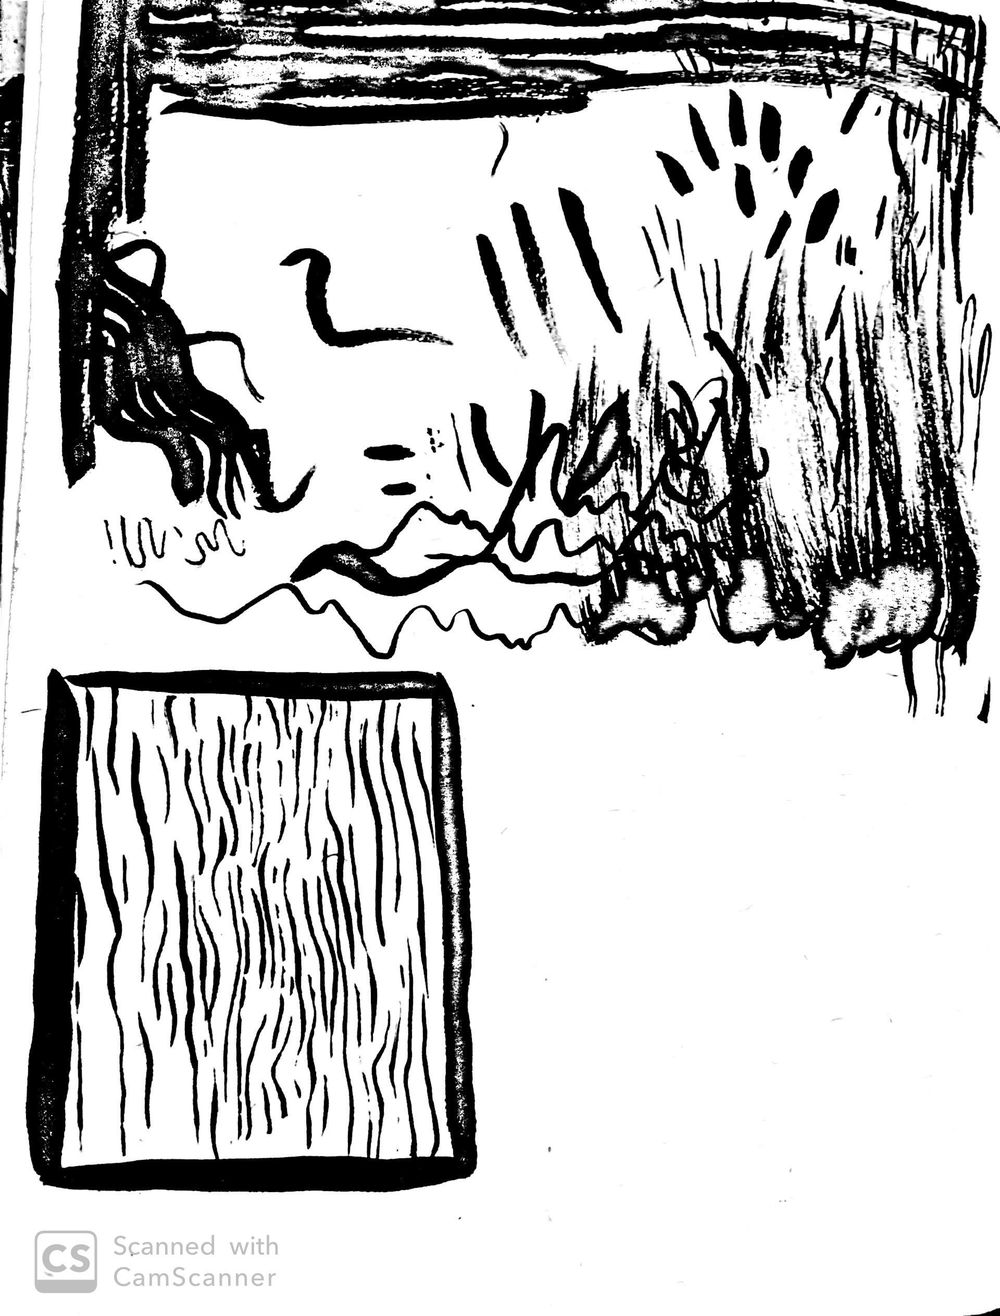 brush experiments - image 2 - student project